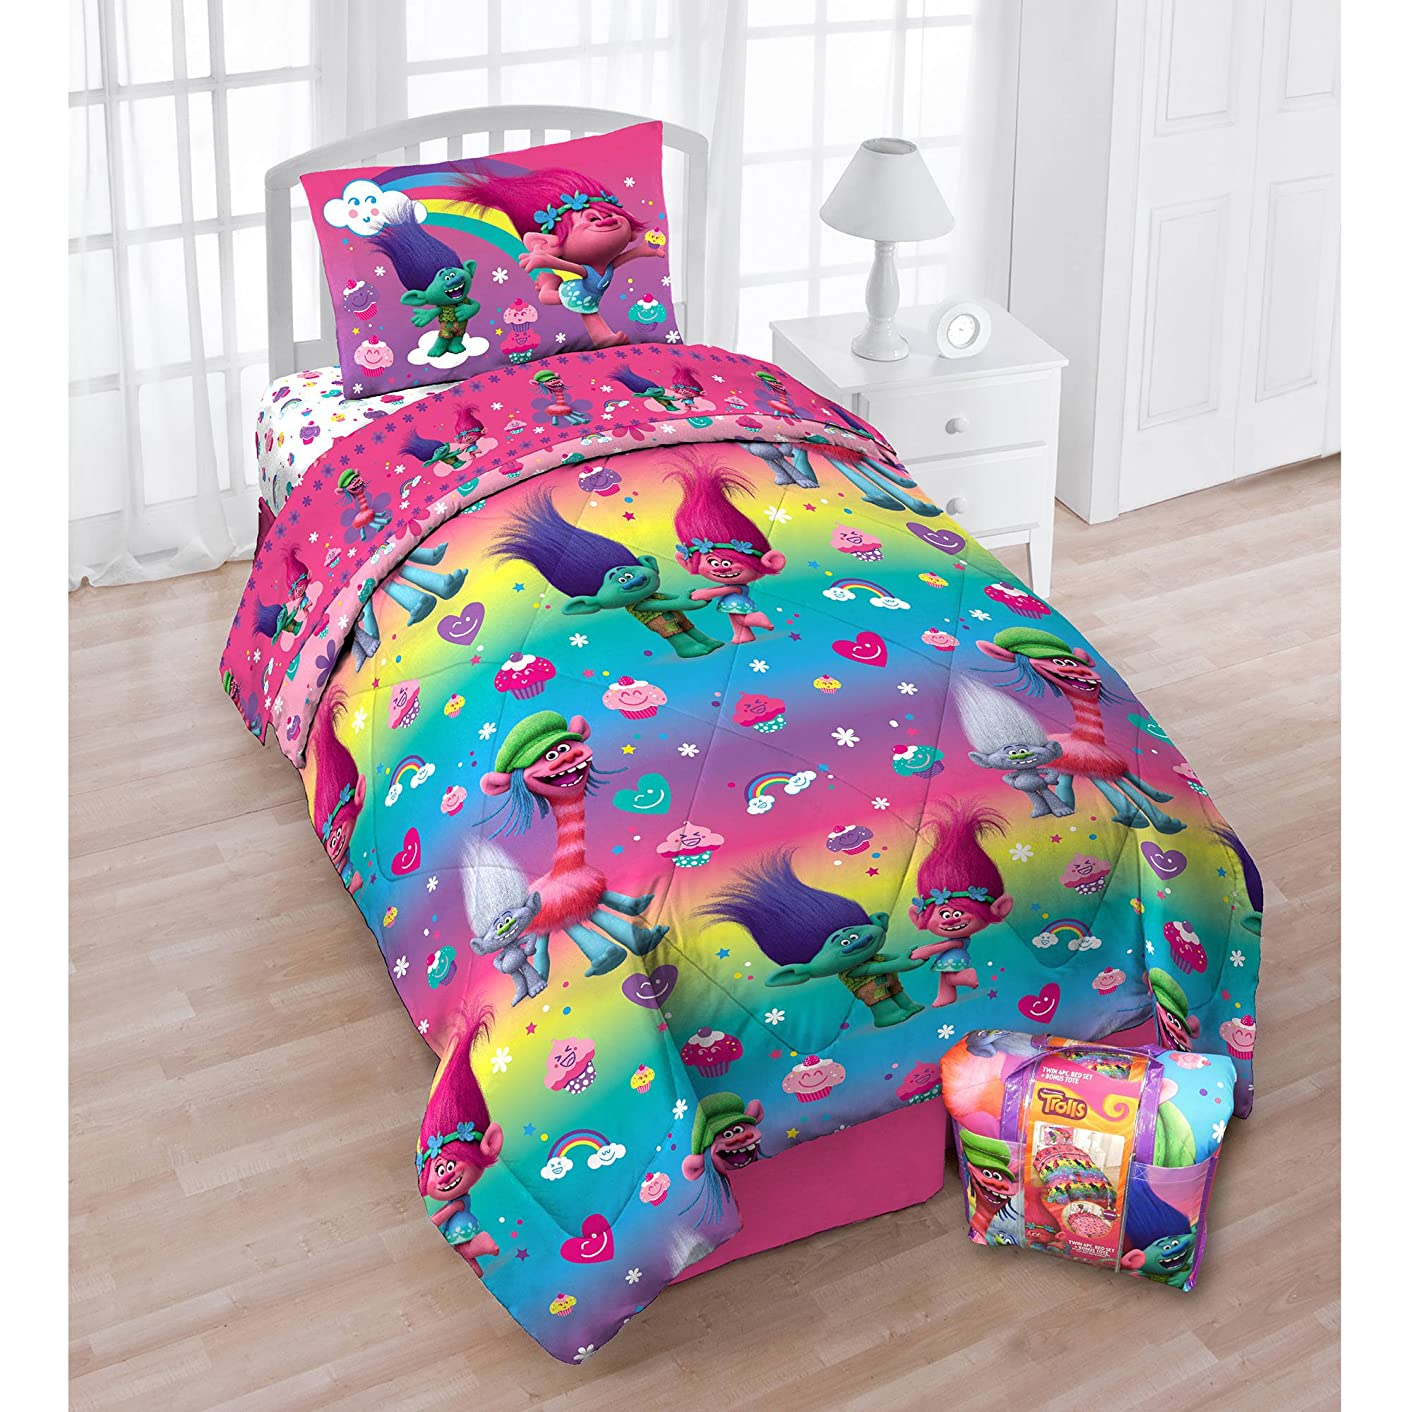 Trolls Cupcakes and Rainbows Comforter 4 piece Set Bed in a Bag with Bonus Tote